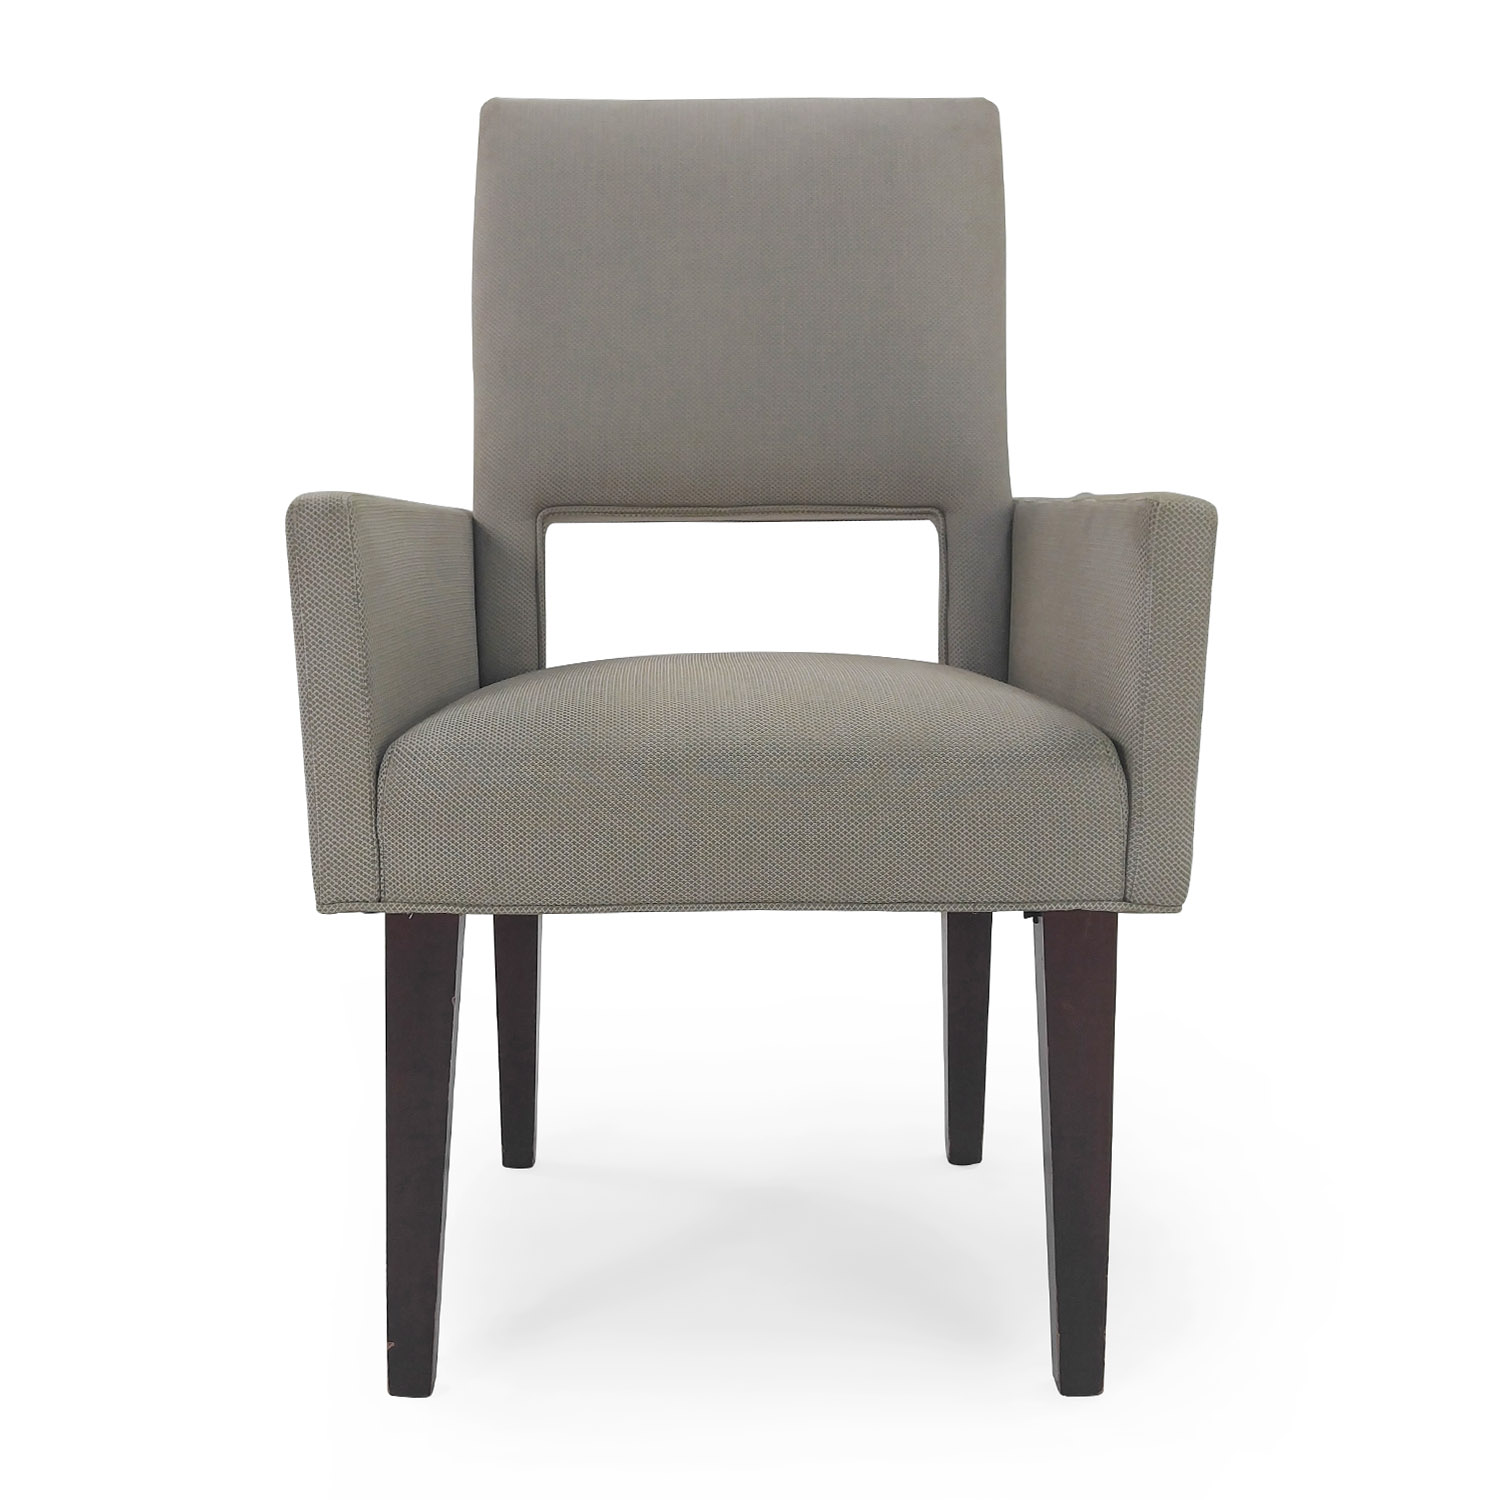 90% OFF Tuscany II Tuscany II Traditional Dining Chair Pair Chairs